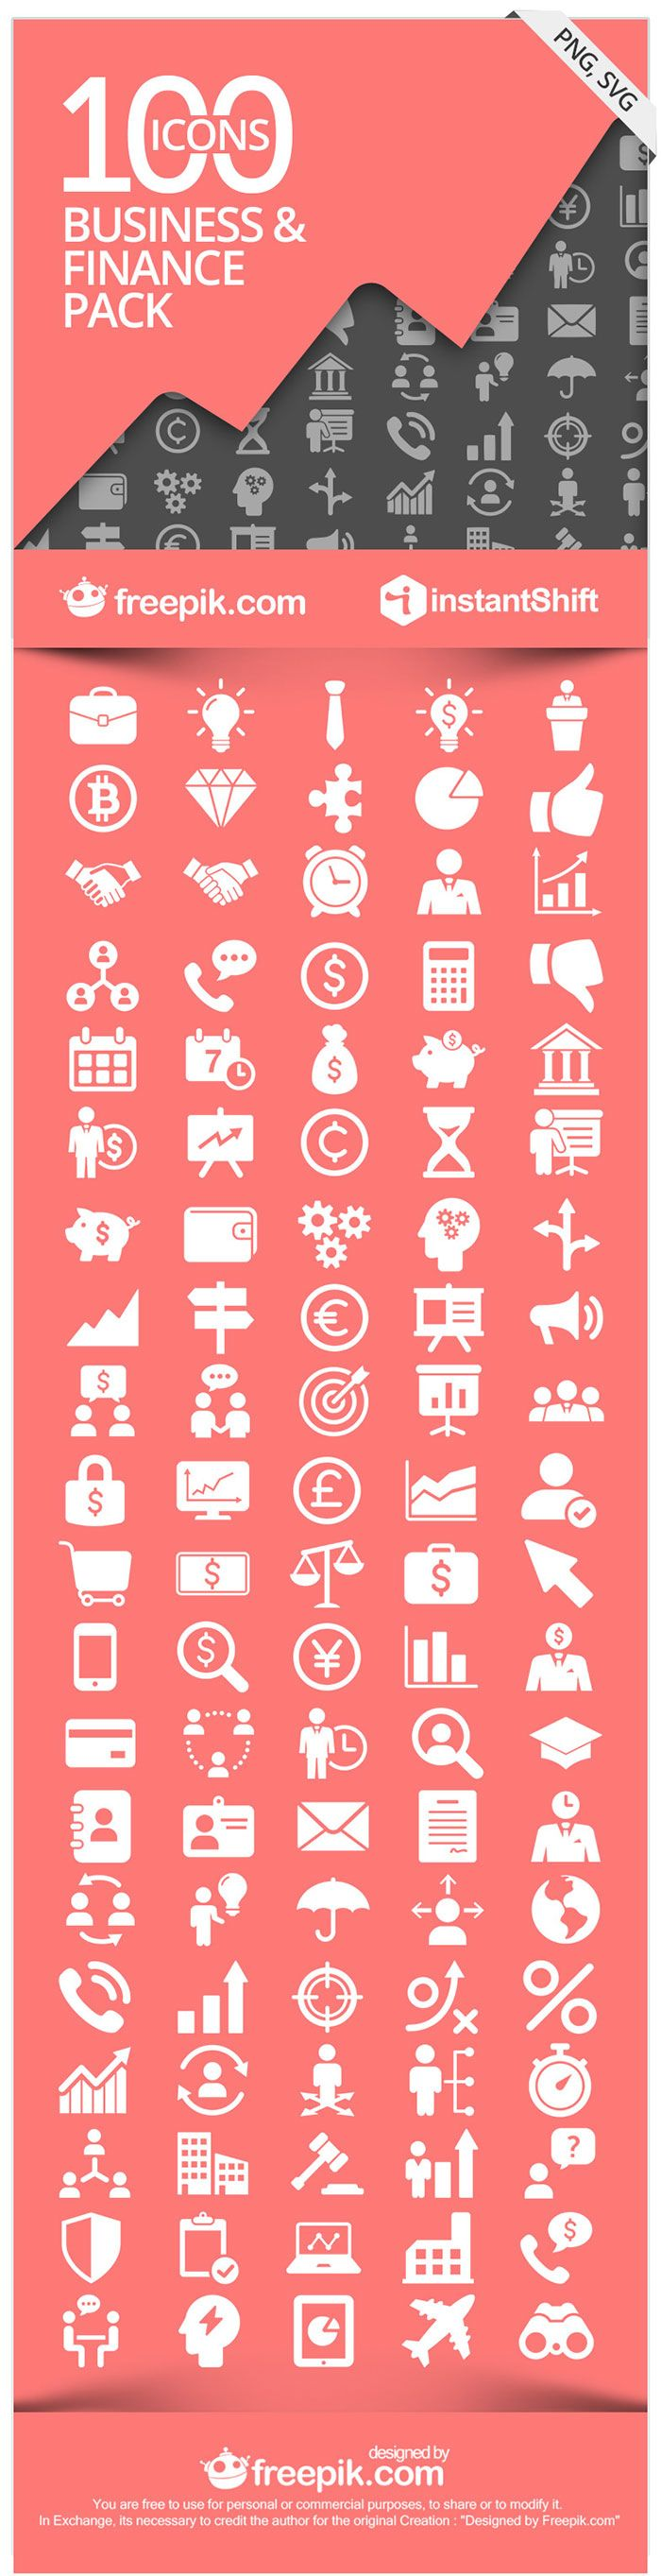 FinBiz - The Free Business & Finance Icon Set via @InstantShift Web Design Magazine Web Design Magazine and @Freepik